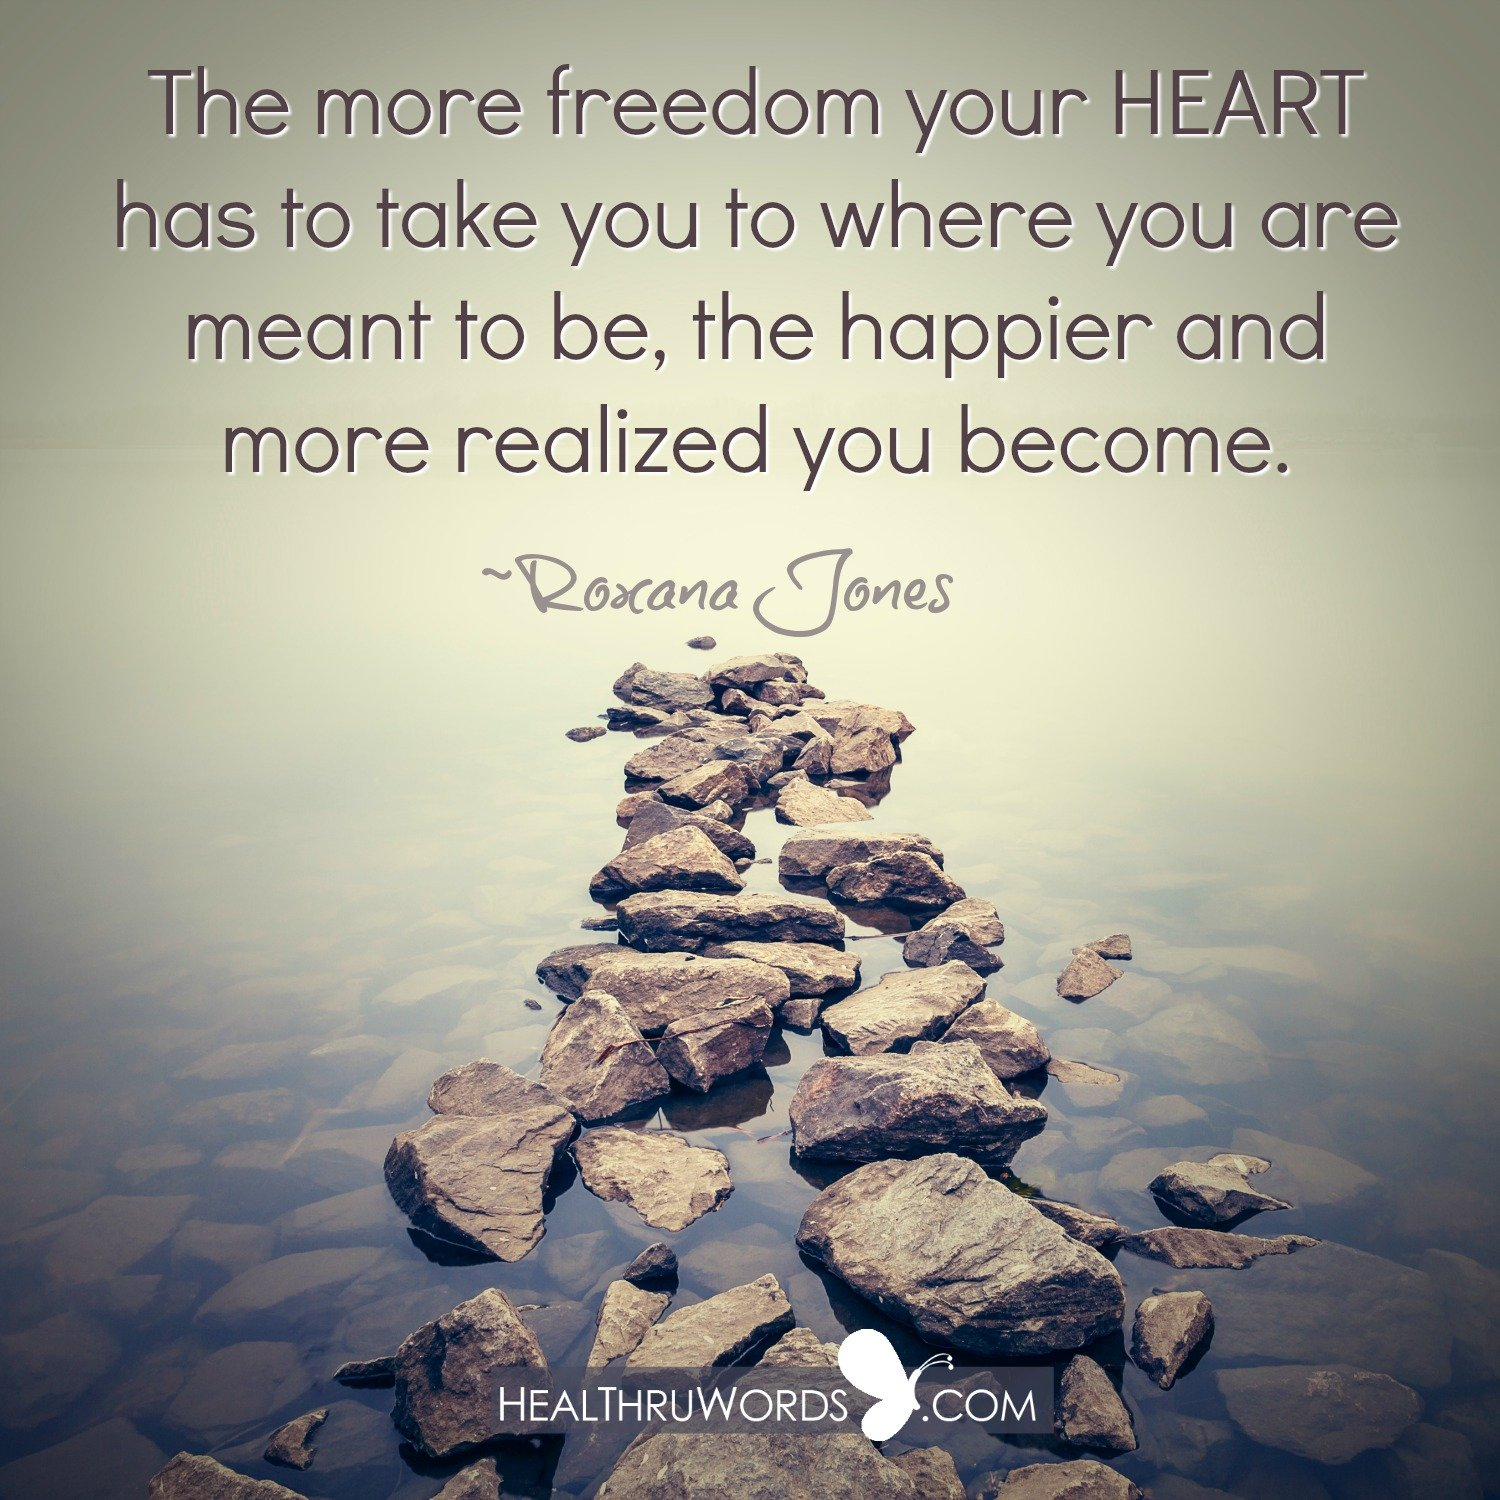 Inspirational Image: When the Heart is Free